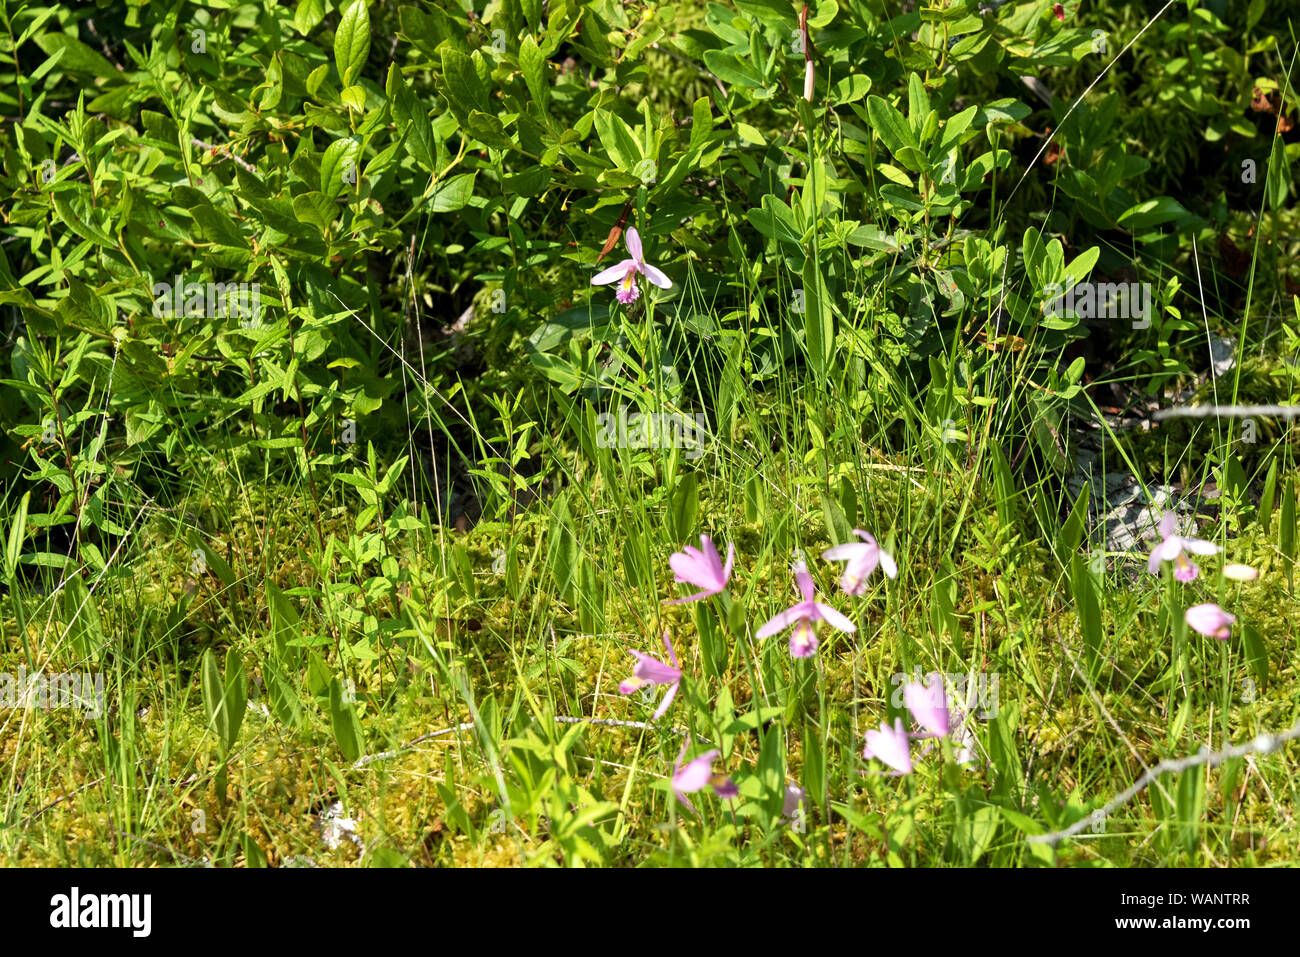 Rose pogonia (Pogonia ophioglossoides) blooming in a ditch near Eastern Head, Isle au Haut, Maine. Stock Photo